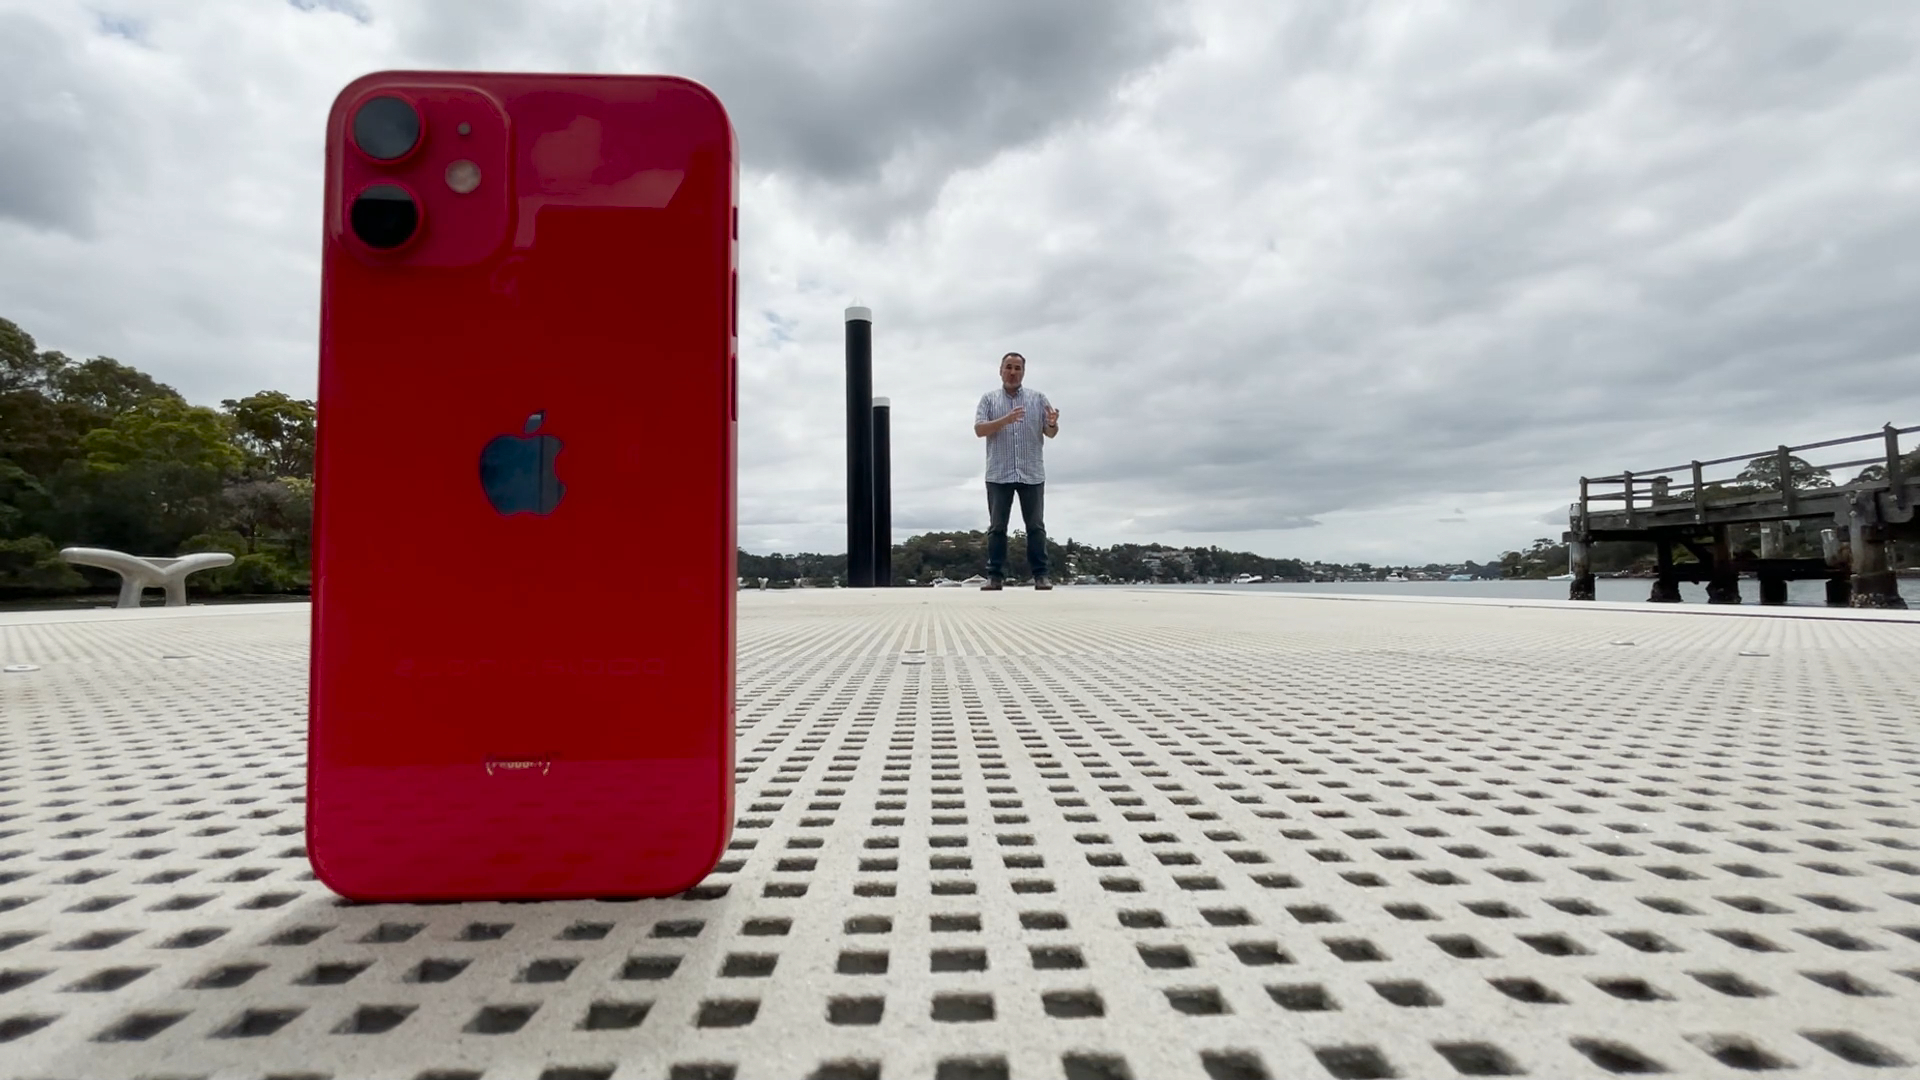 iPhone 12 Mini Review: Size does not matter